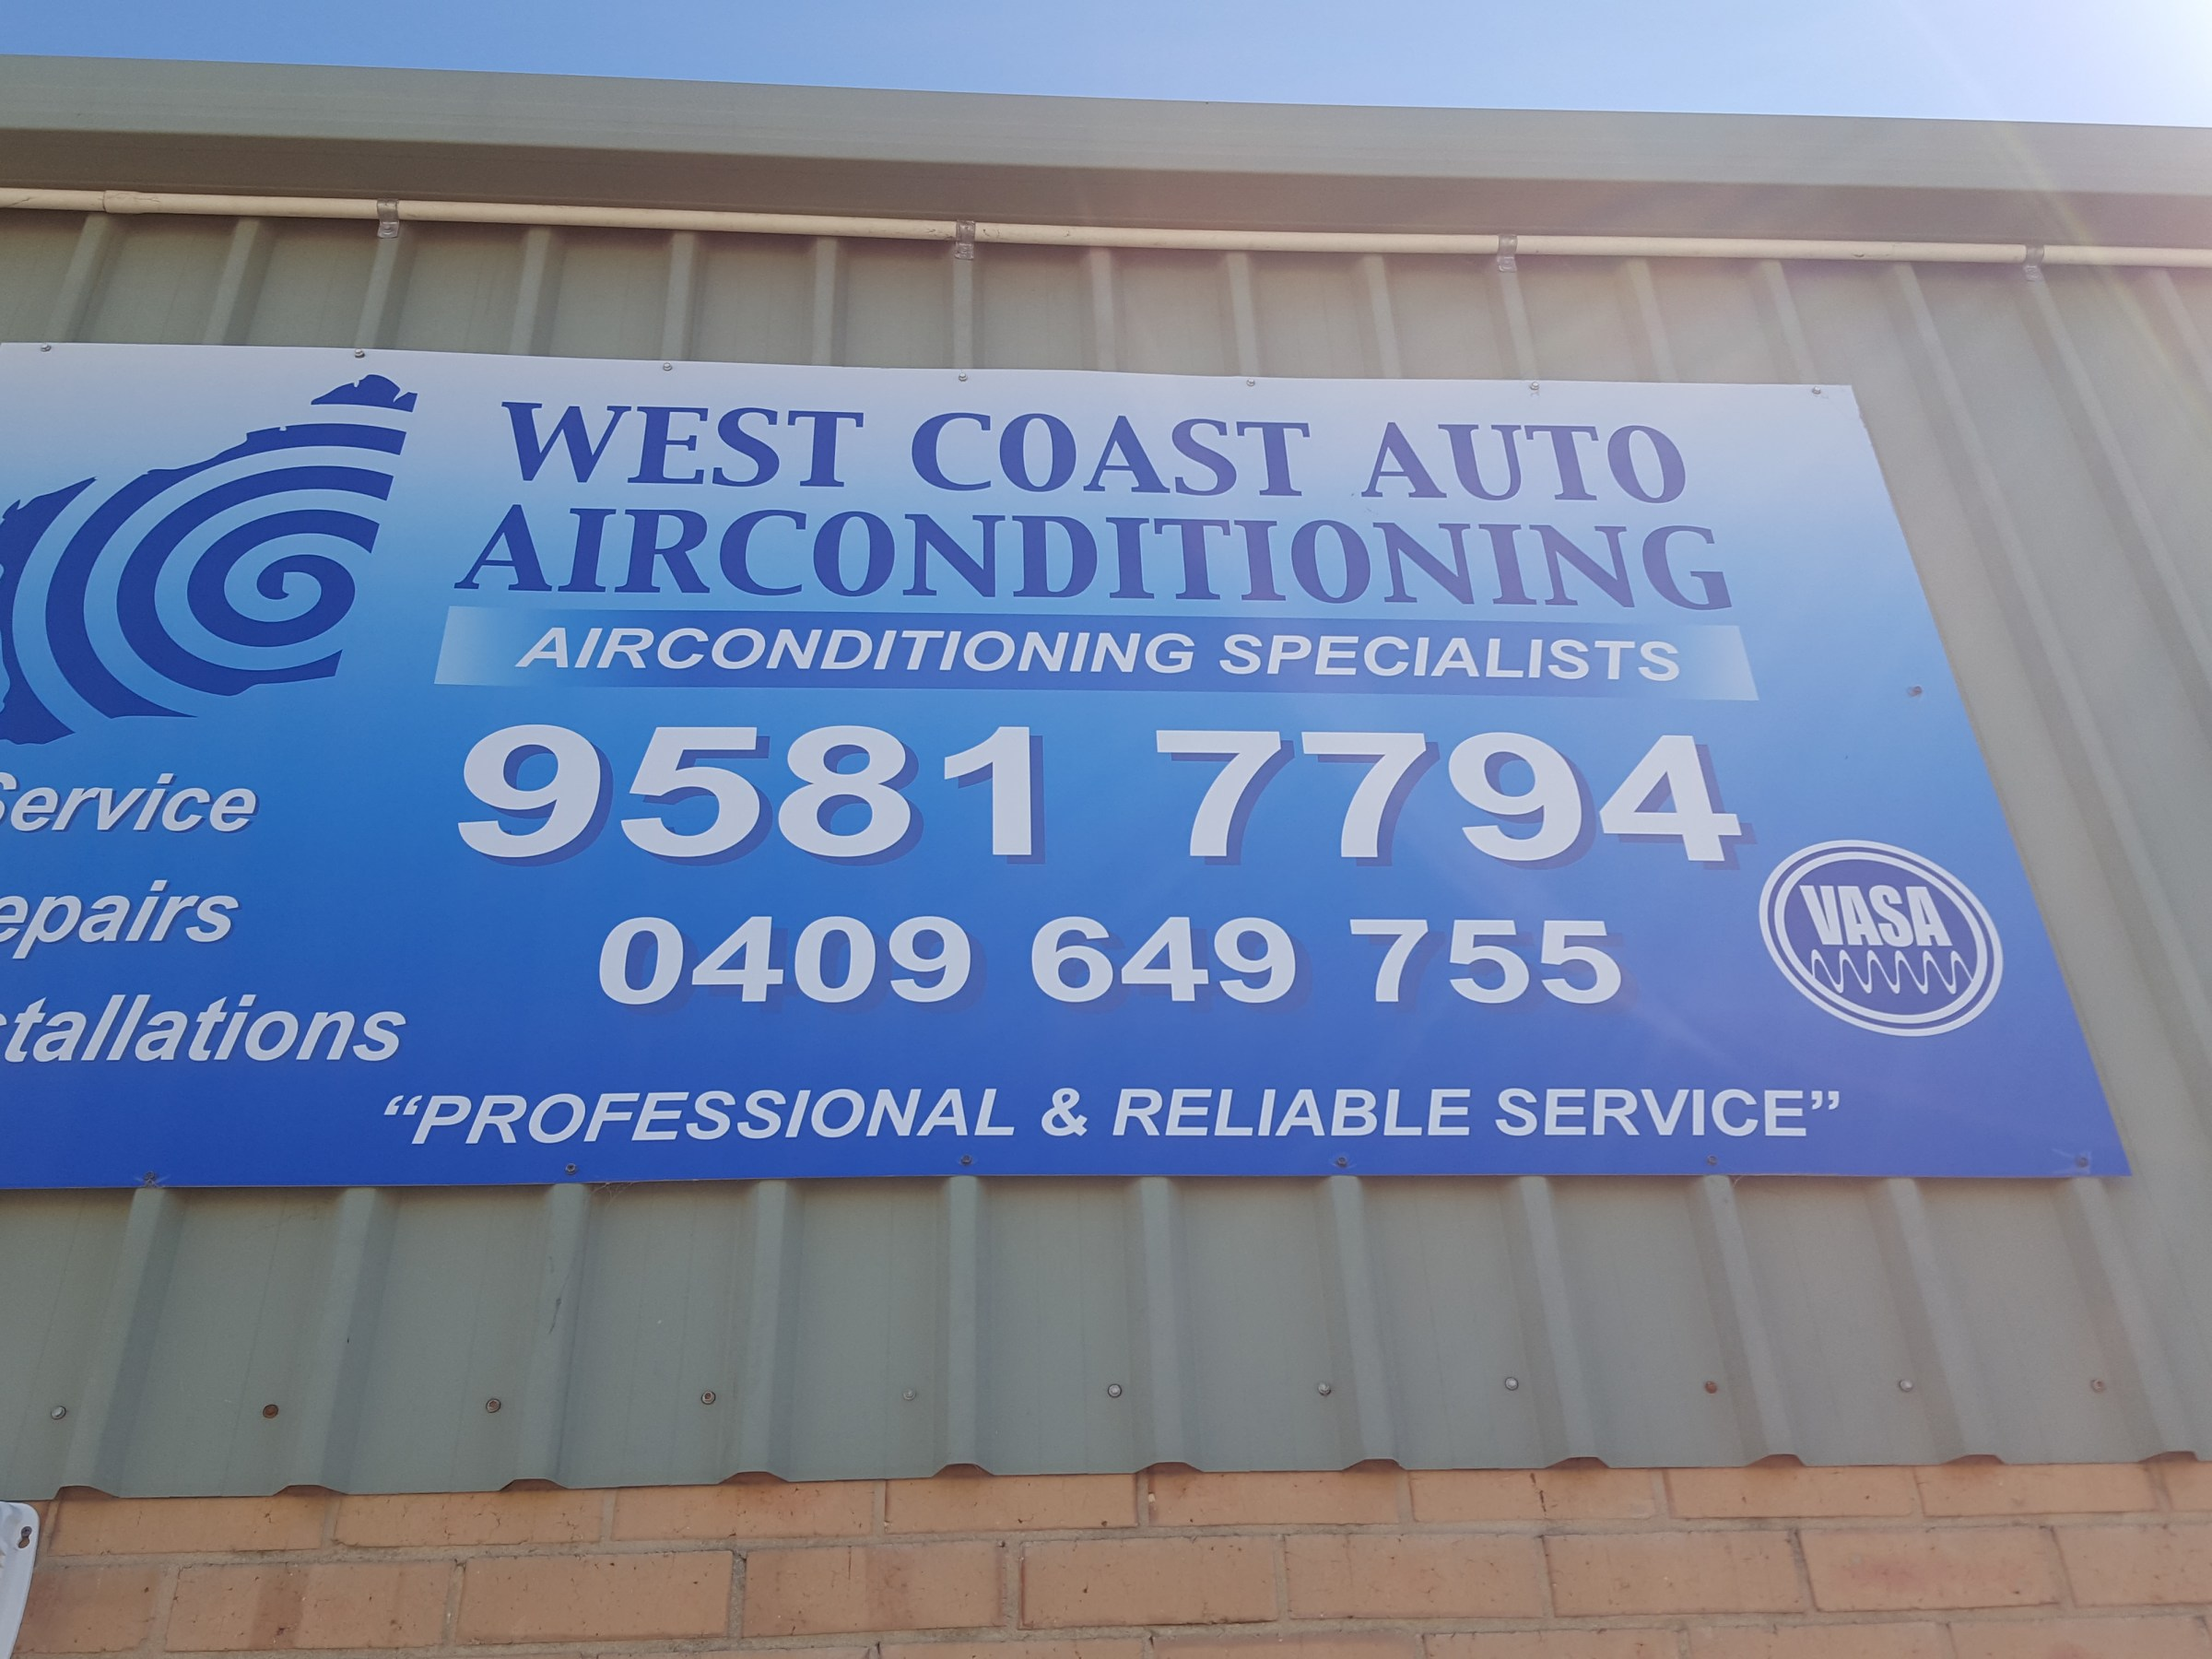 West Coast Auto Airconditioning